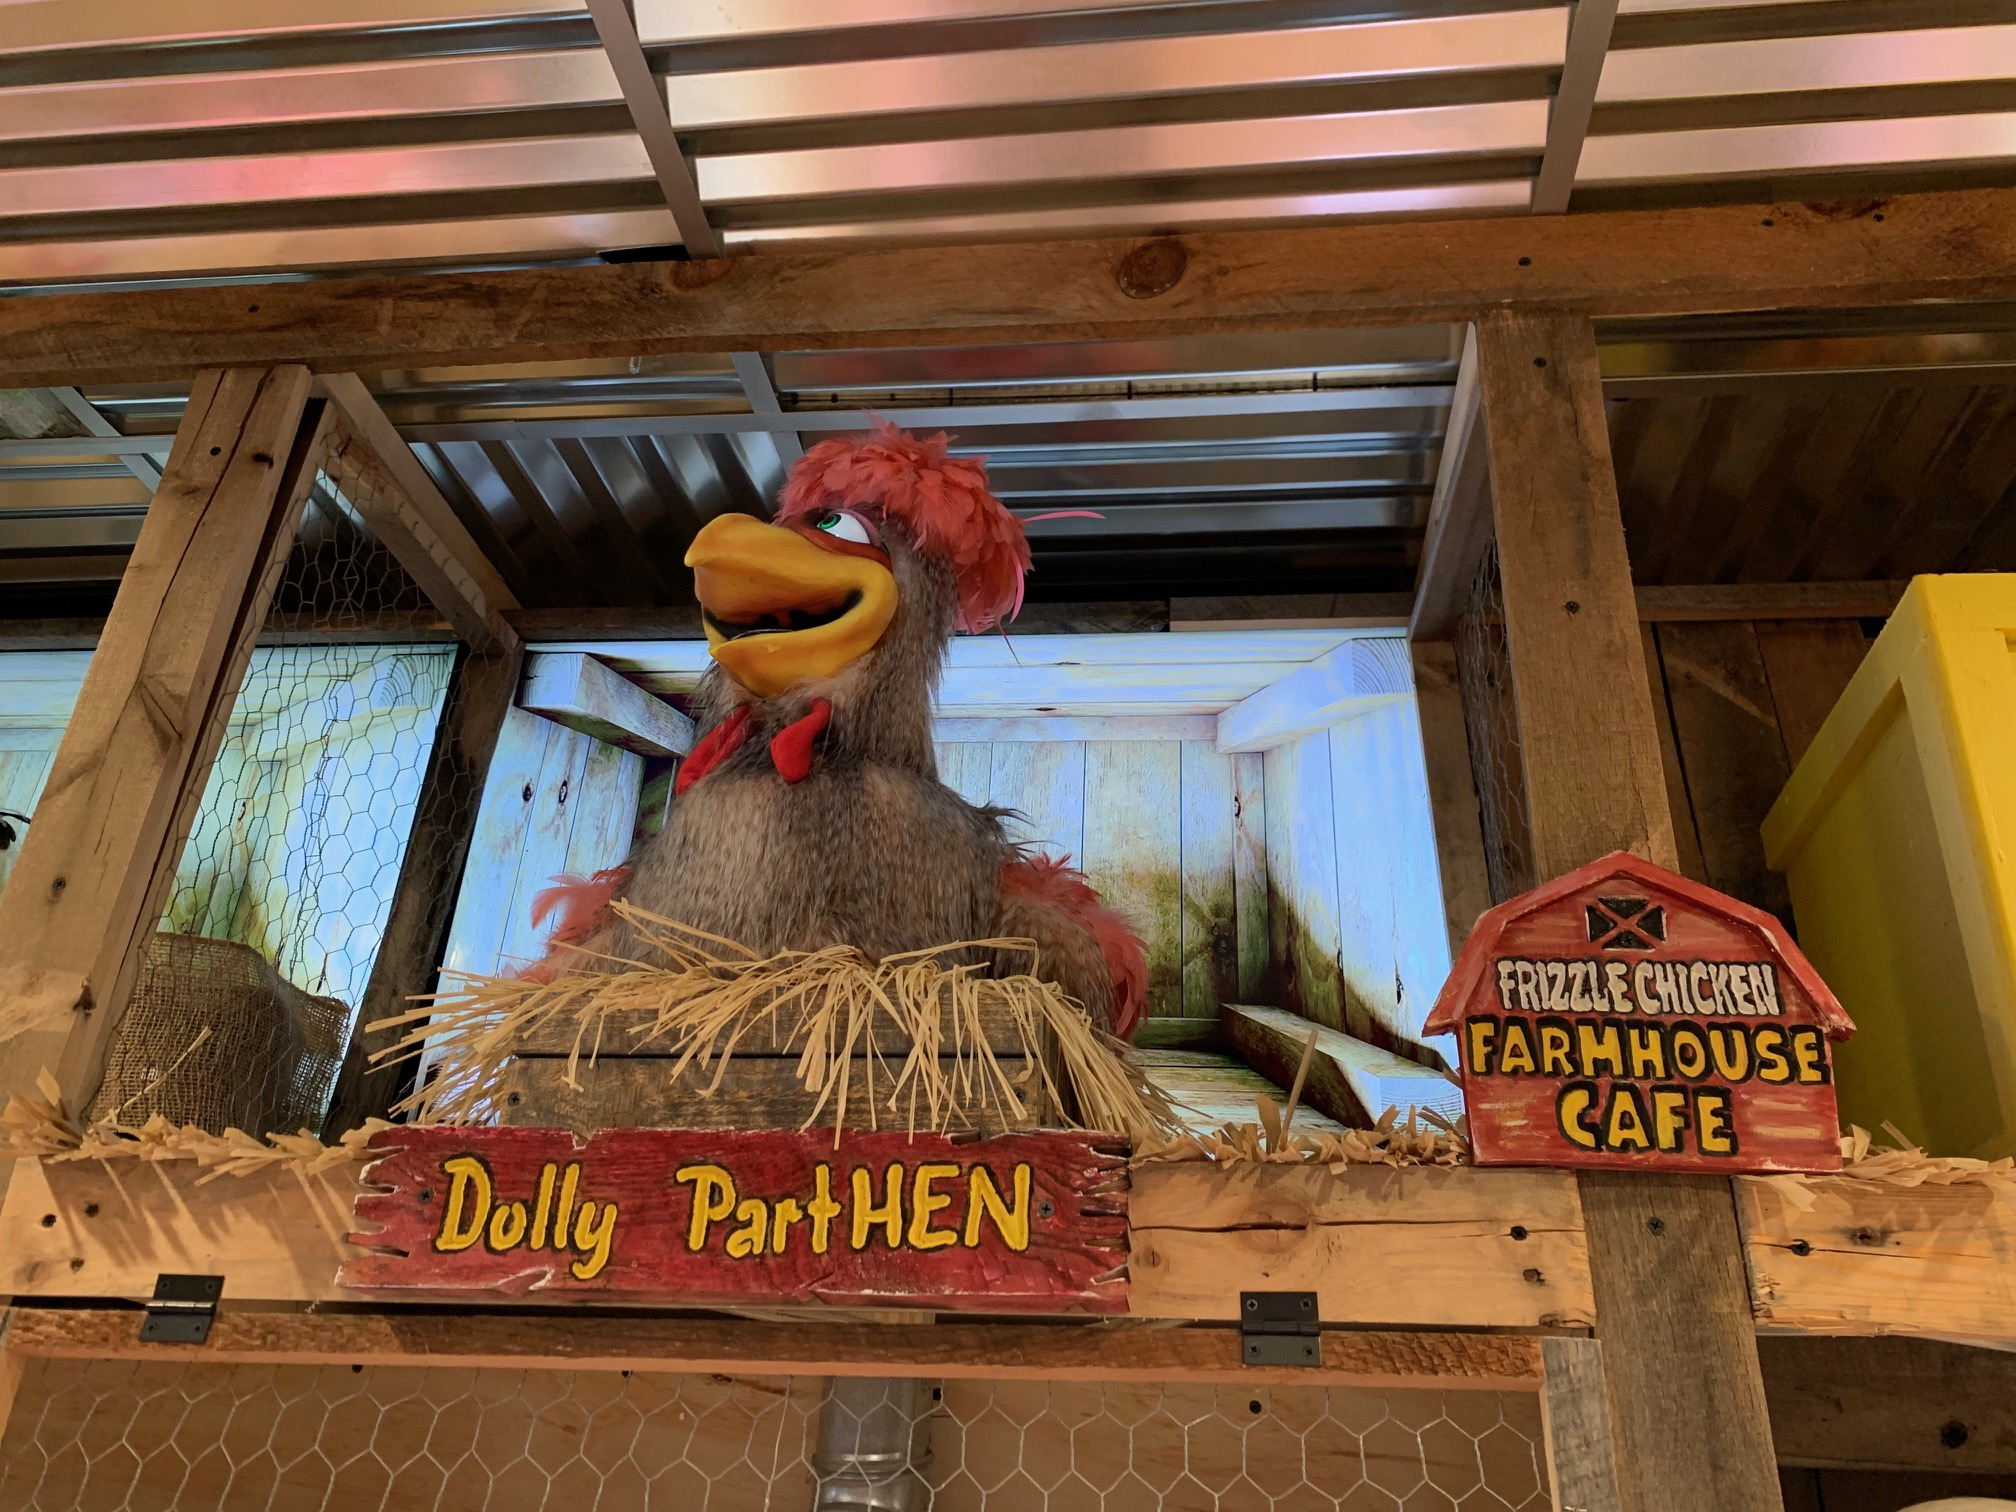 Foodie Tour of Pigeon Forge. Frizzle Chicken Farmhouse Cafe Pigeon Forge animatronic chicken Dolly PartHEN